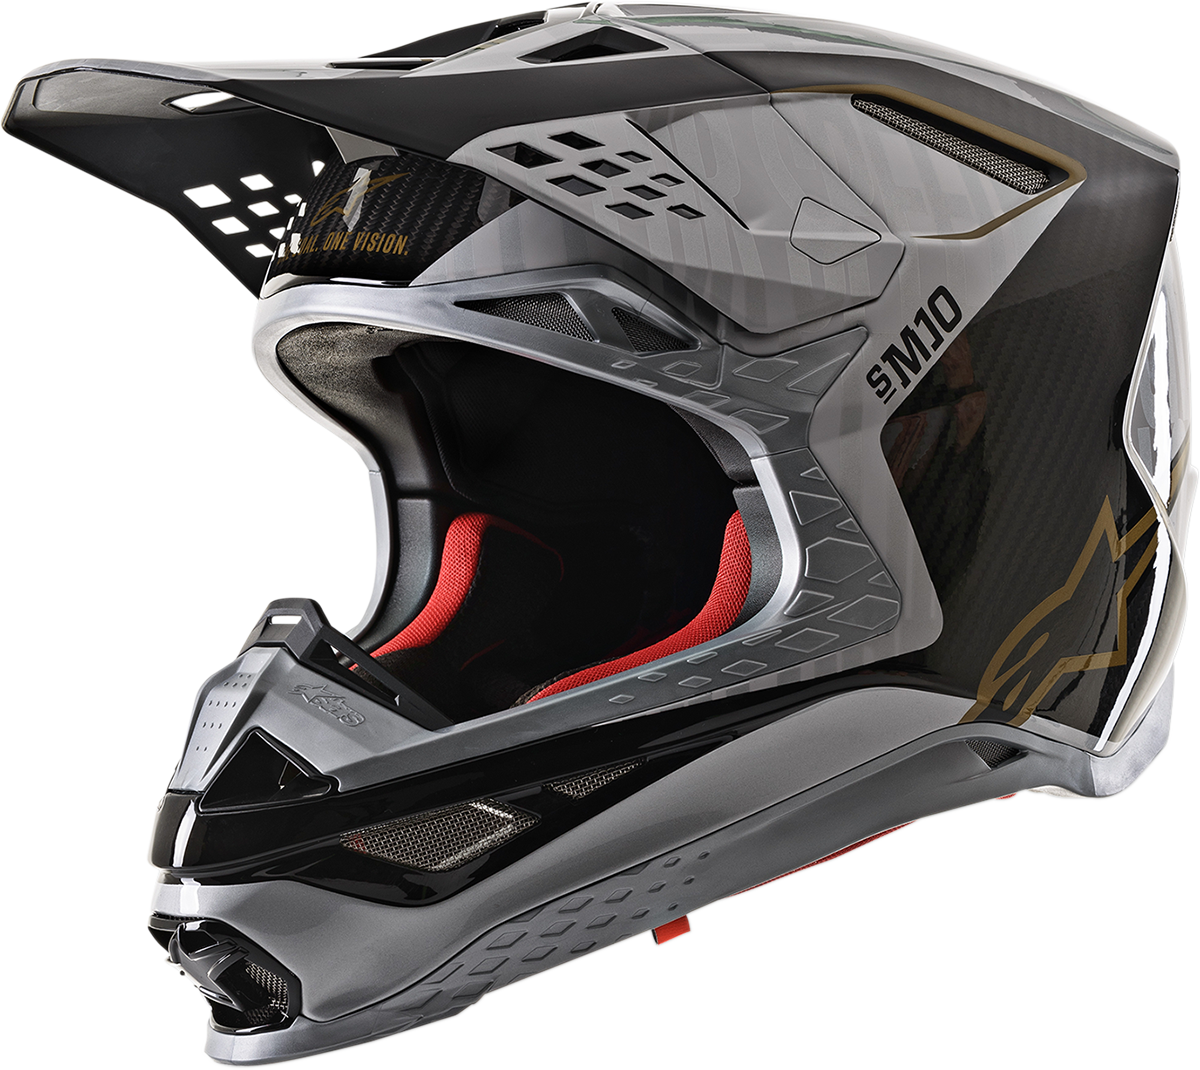 Alpinestars Unisex Supertech M10 Offroad Riding Dirt Bike Racing Fullface Helmet